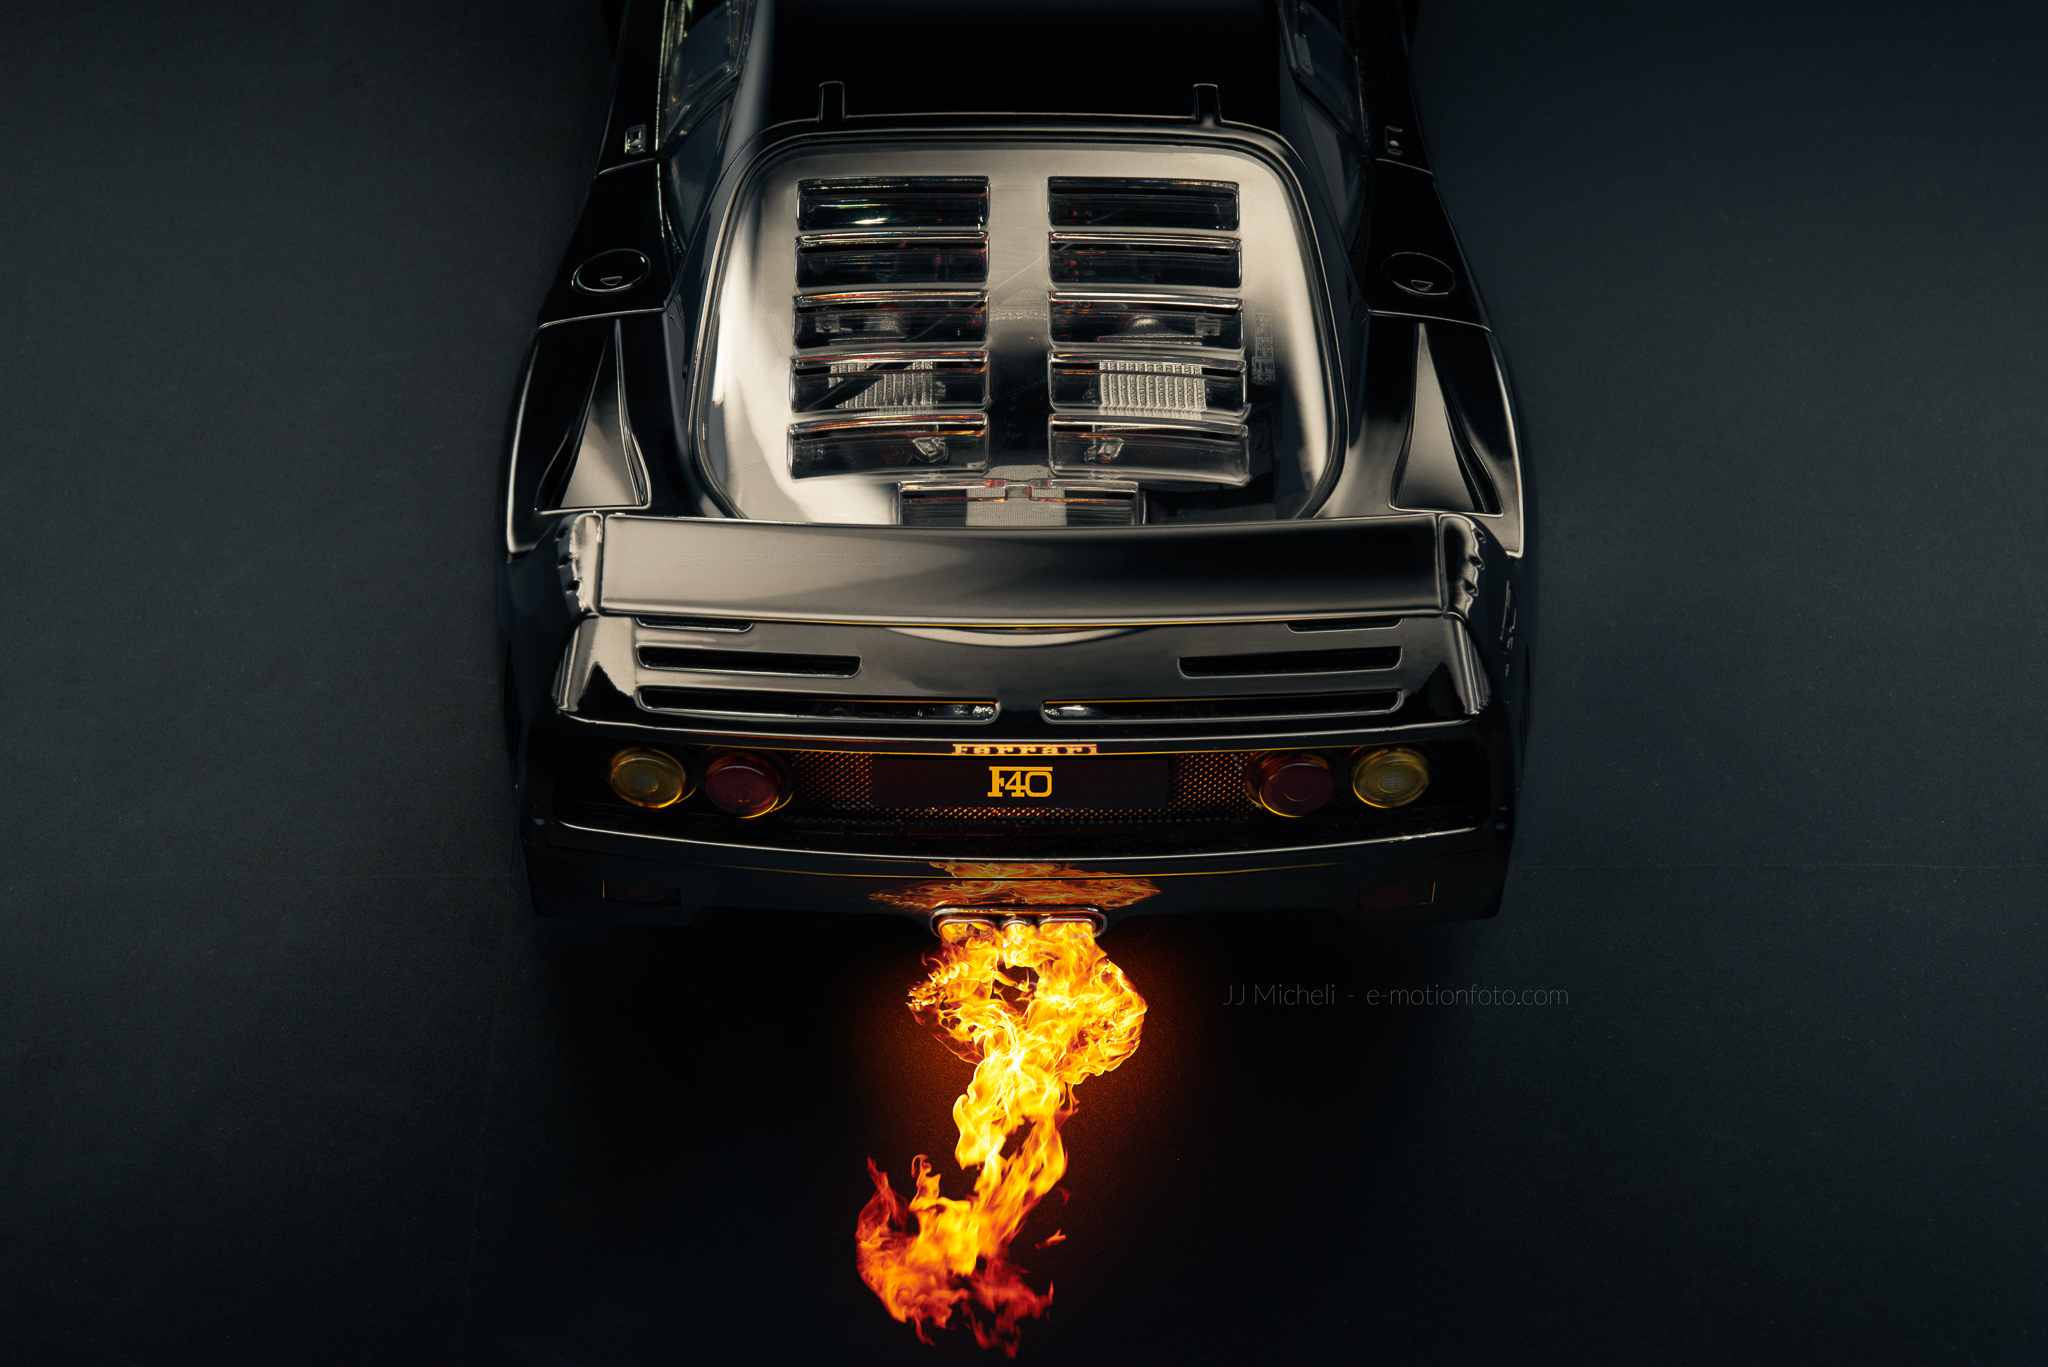 Ferrari F40 Light Weight - Flammes